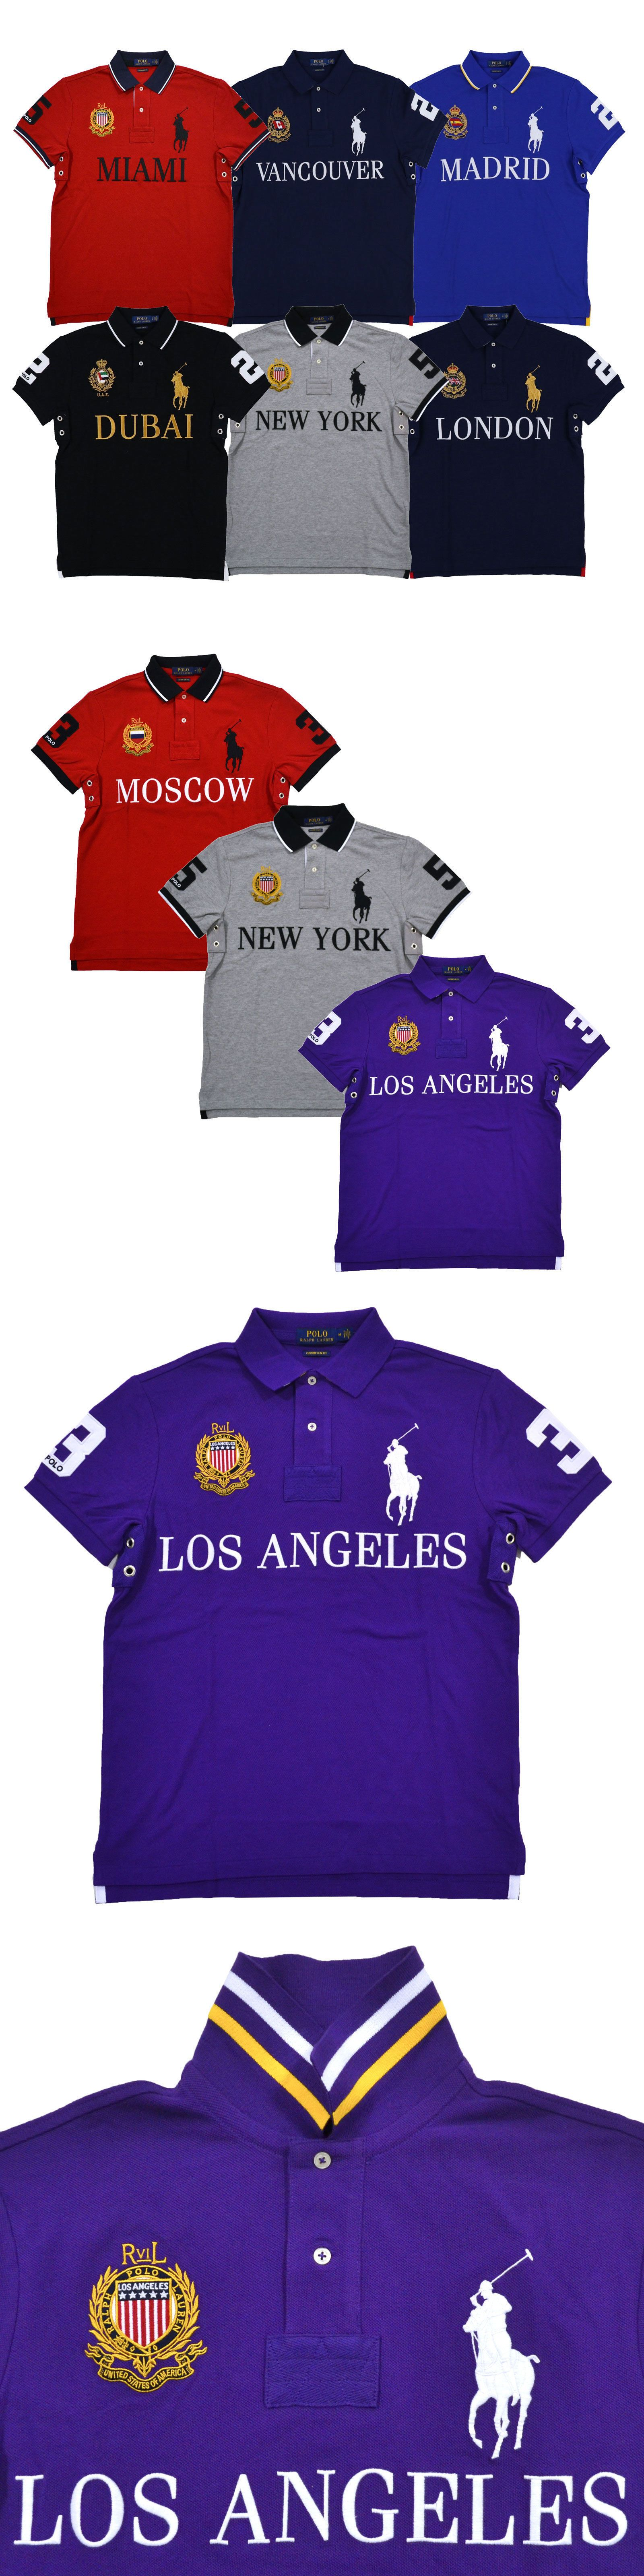 d64d342c Polos 185101: Polo Ralph Lauren Big Pony City Polo Shirt Men Custom Slim Fit  Mesh Knit New Nwt -> BUY IT NOW ONLY: $86.99 on #eBay #polos #ralph #lauren  ...